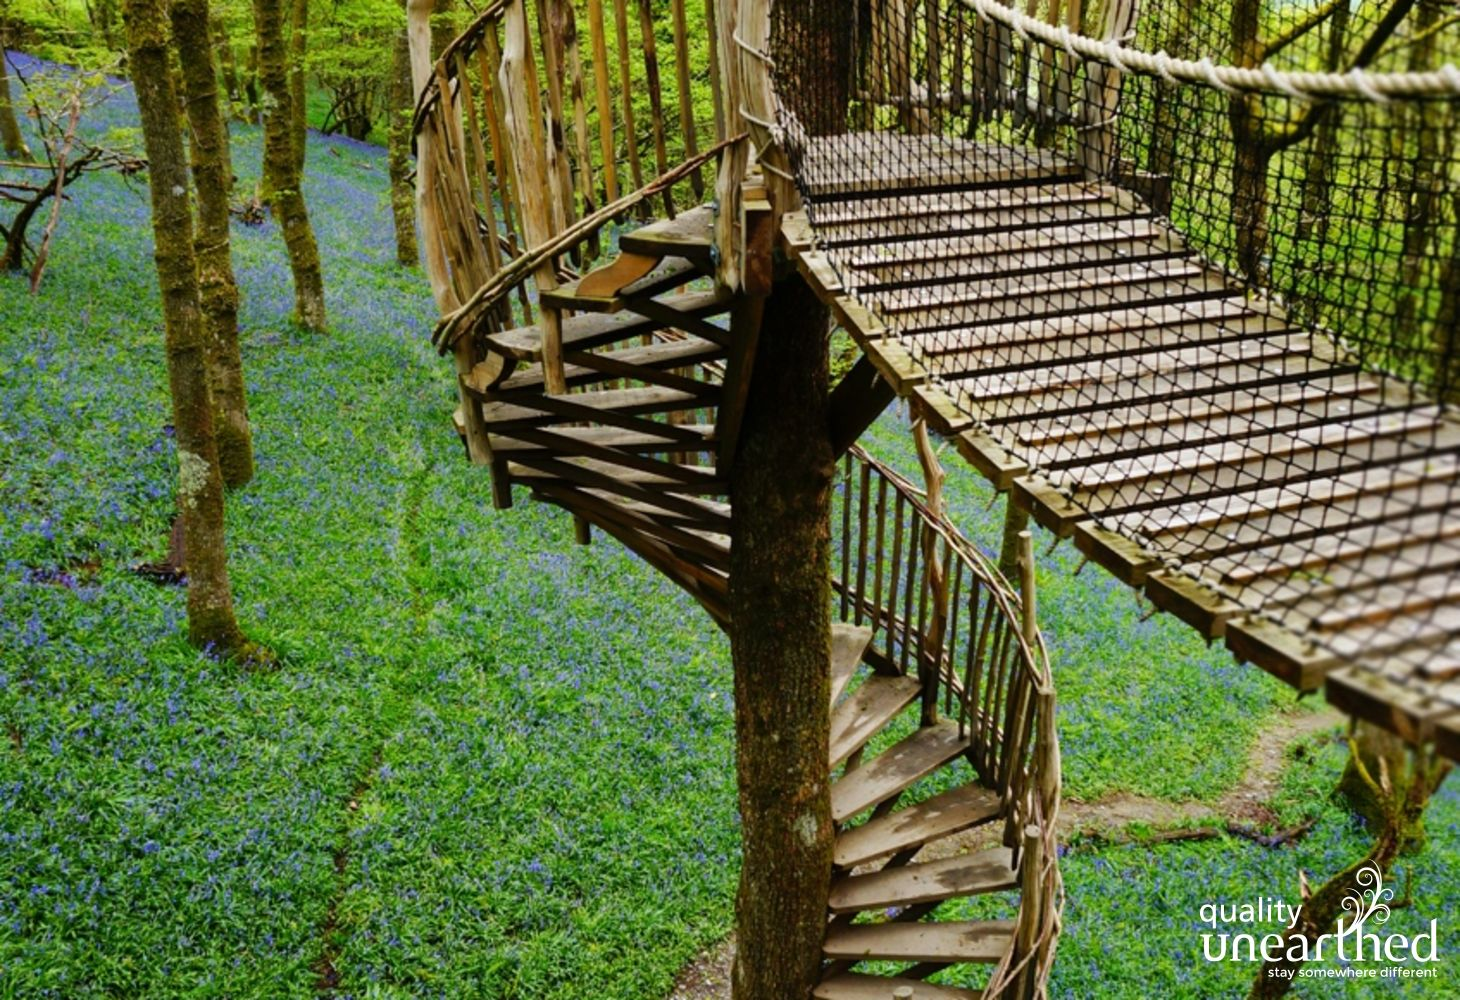 A wooden spiral staircase winds its way from the rope bridge to the forest floor, decked out in bluebells. Photo taken from the family treehouse